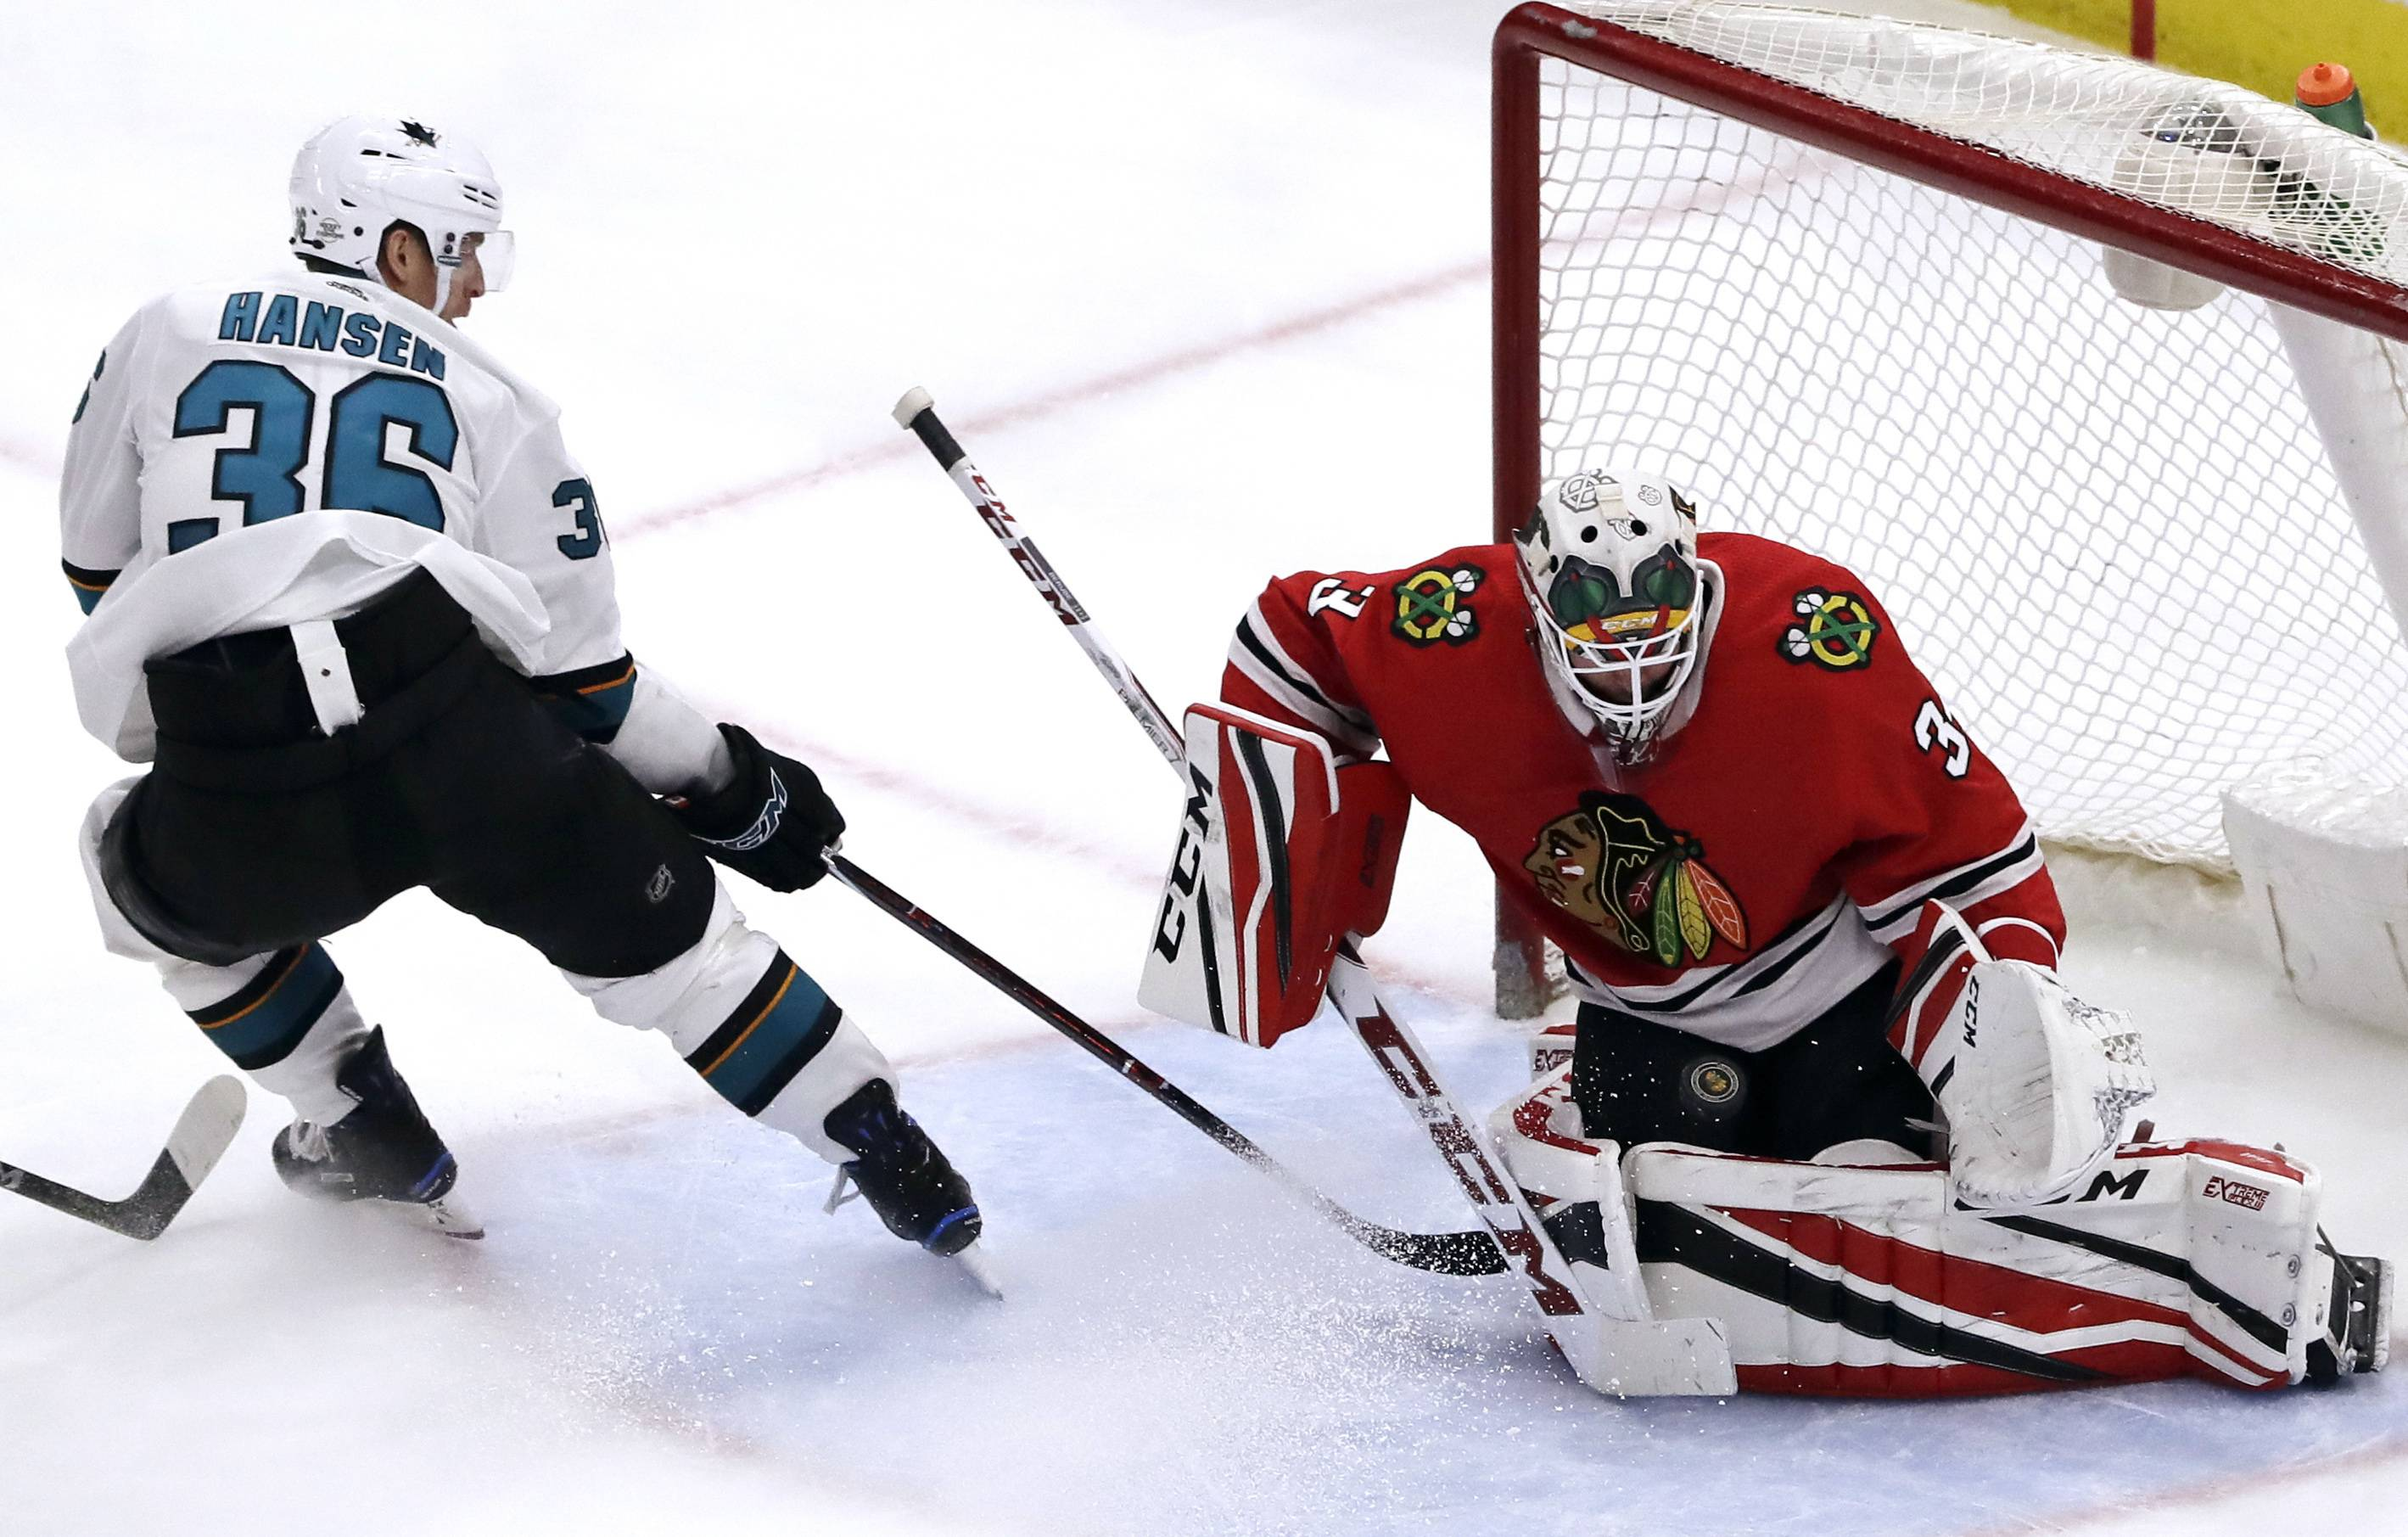 Chicago Blackhawks goalie J-F Berube, right, stops a shot by San Jose Sharks right wing Jannik Hansen during the third period Friday at the United Center. The Blackhawks won 3-1.